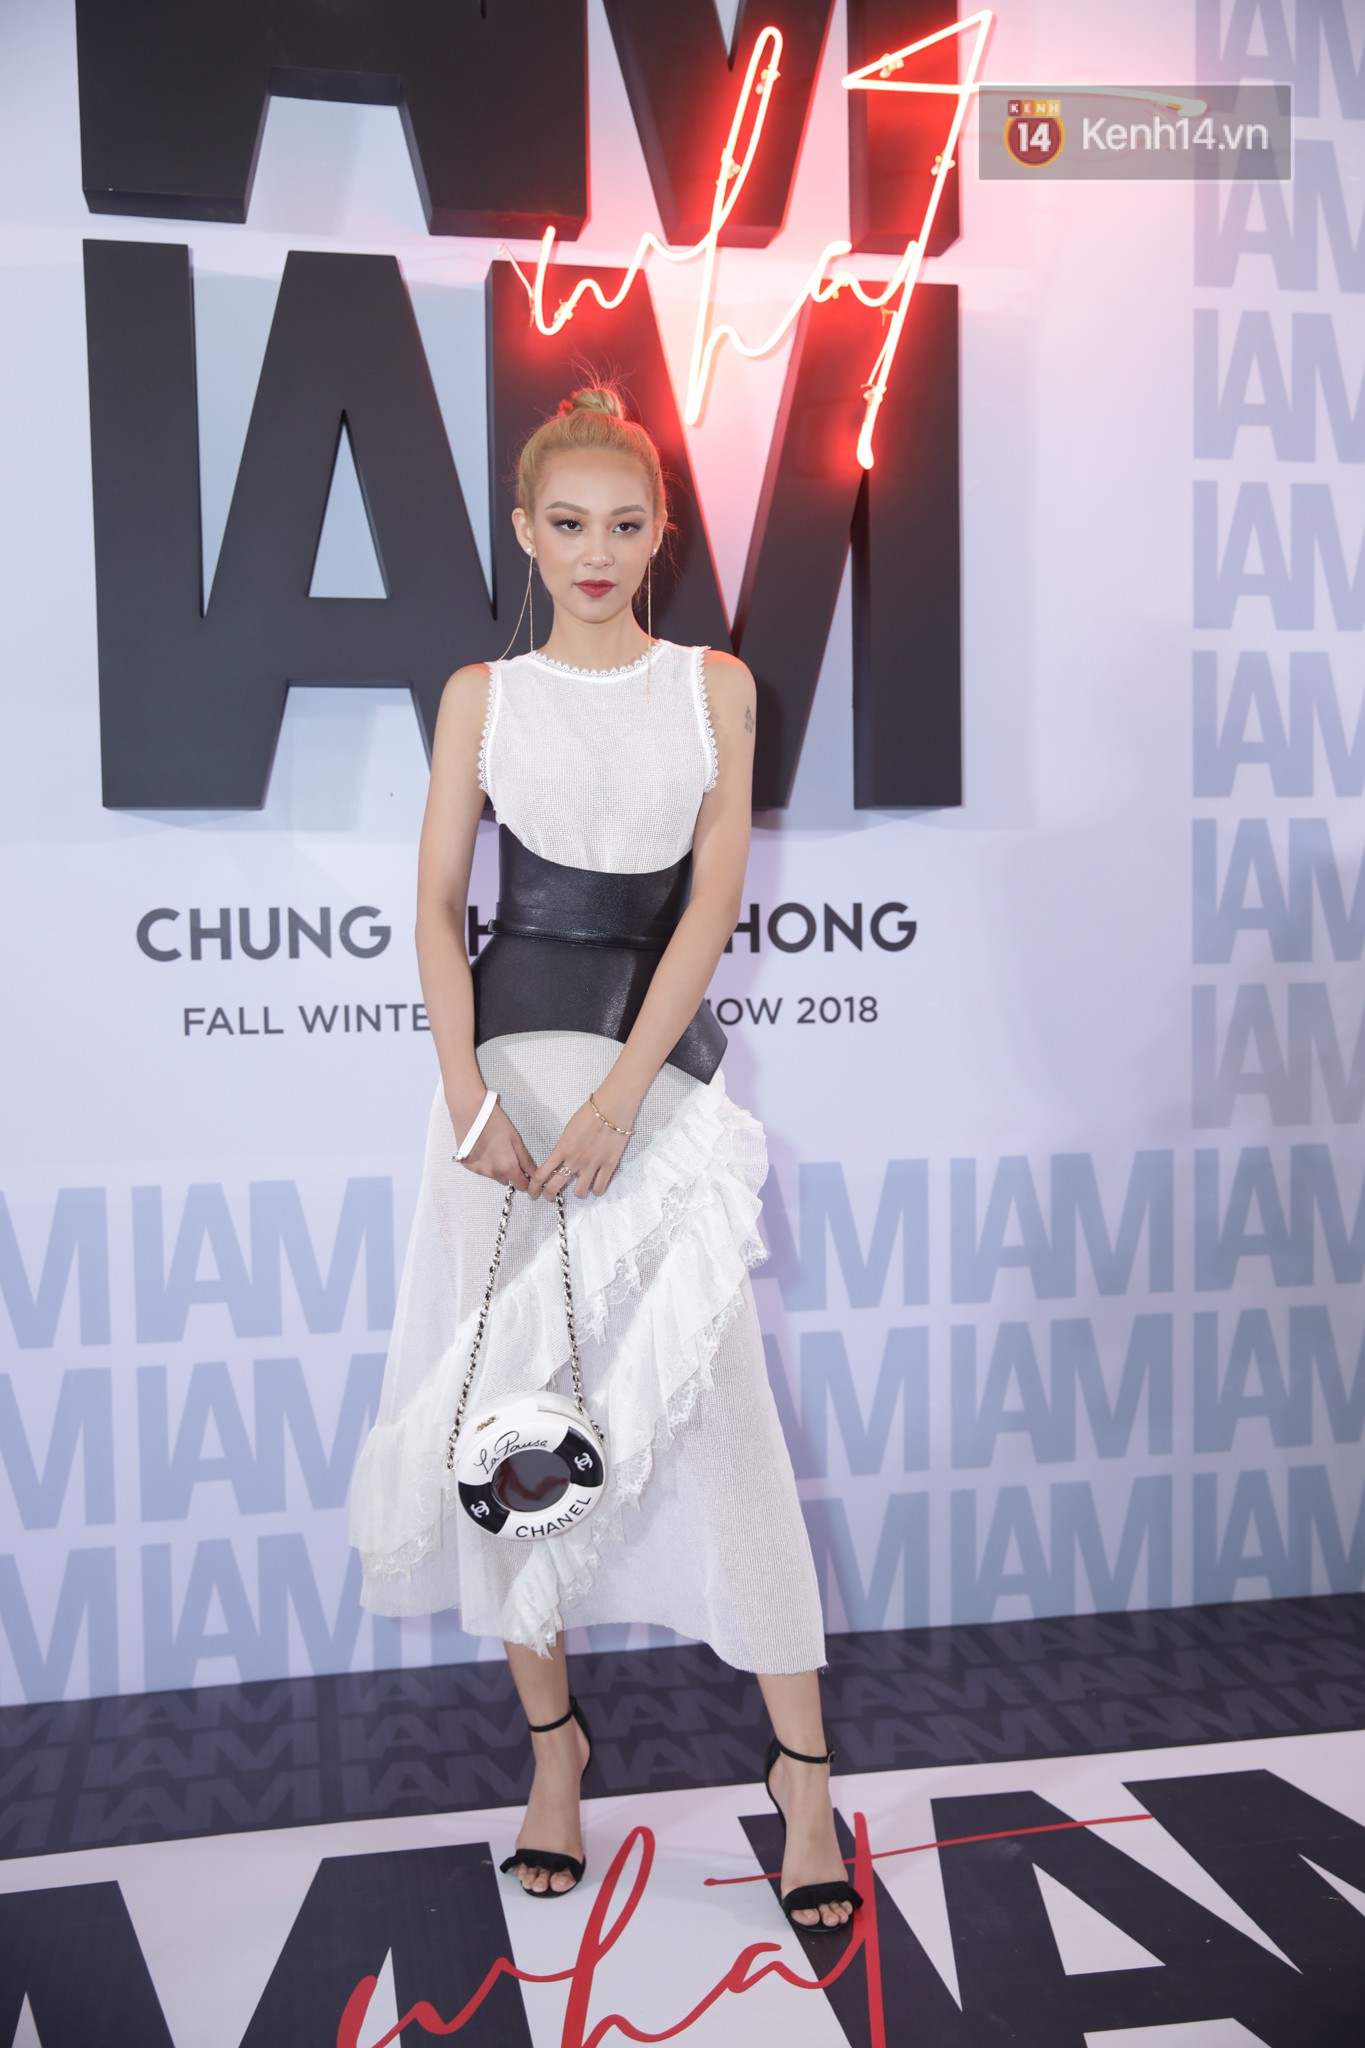 The red carpet Chung Thanh Phong show: it was able to try out strange jewelry, Quỳnh Anh Shyn caught rain like spiders - a picture 18.